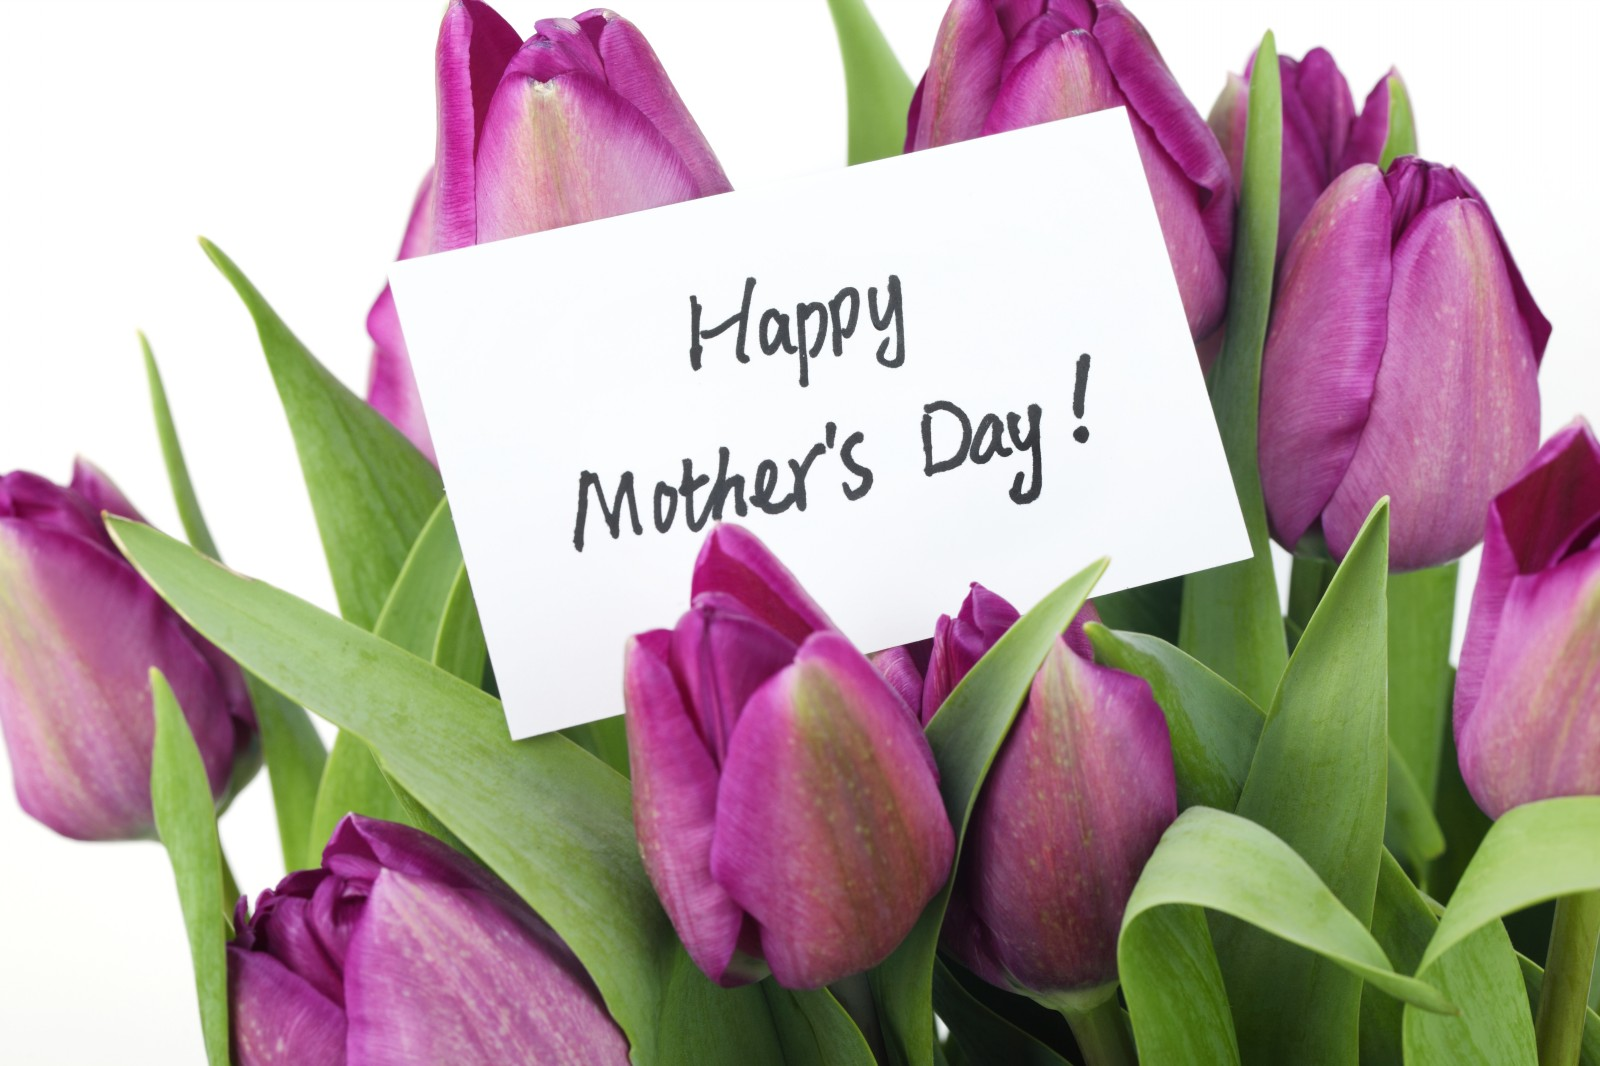 Happy Mothers Day Happy-Mothers-Day-Card-12